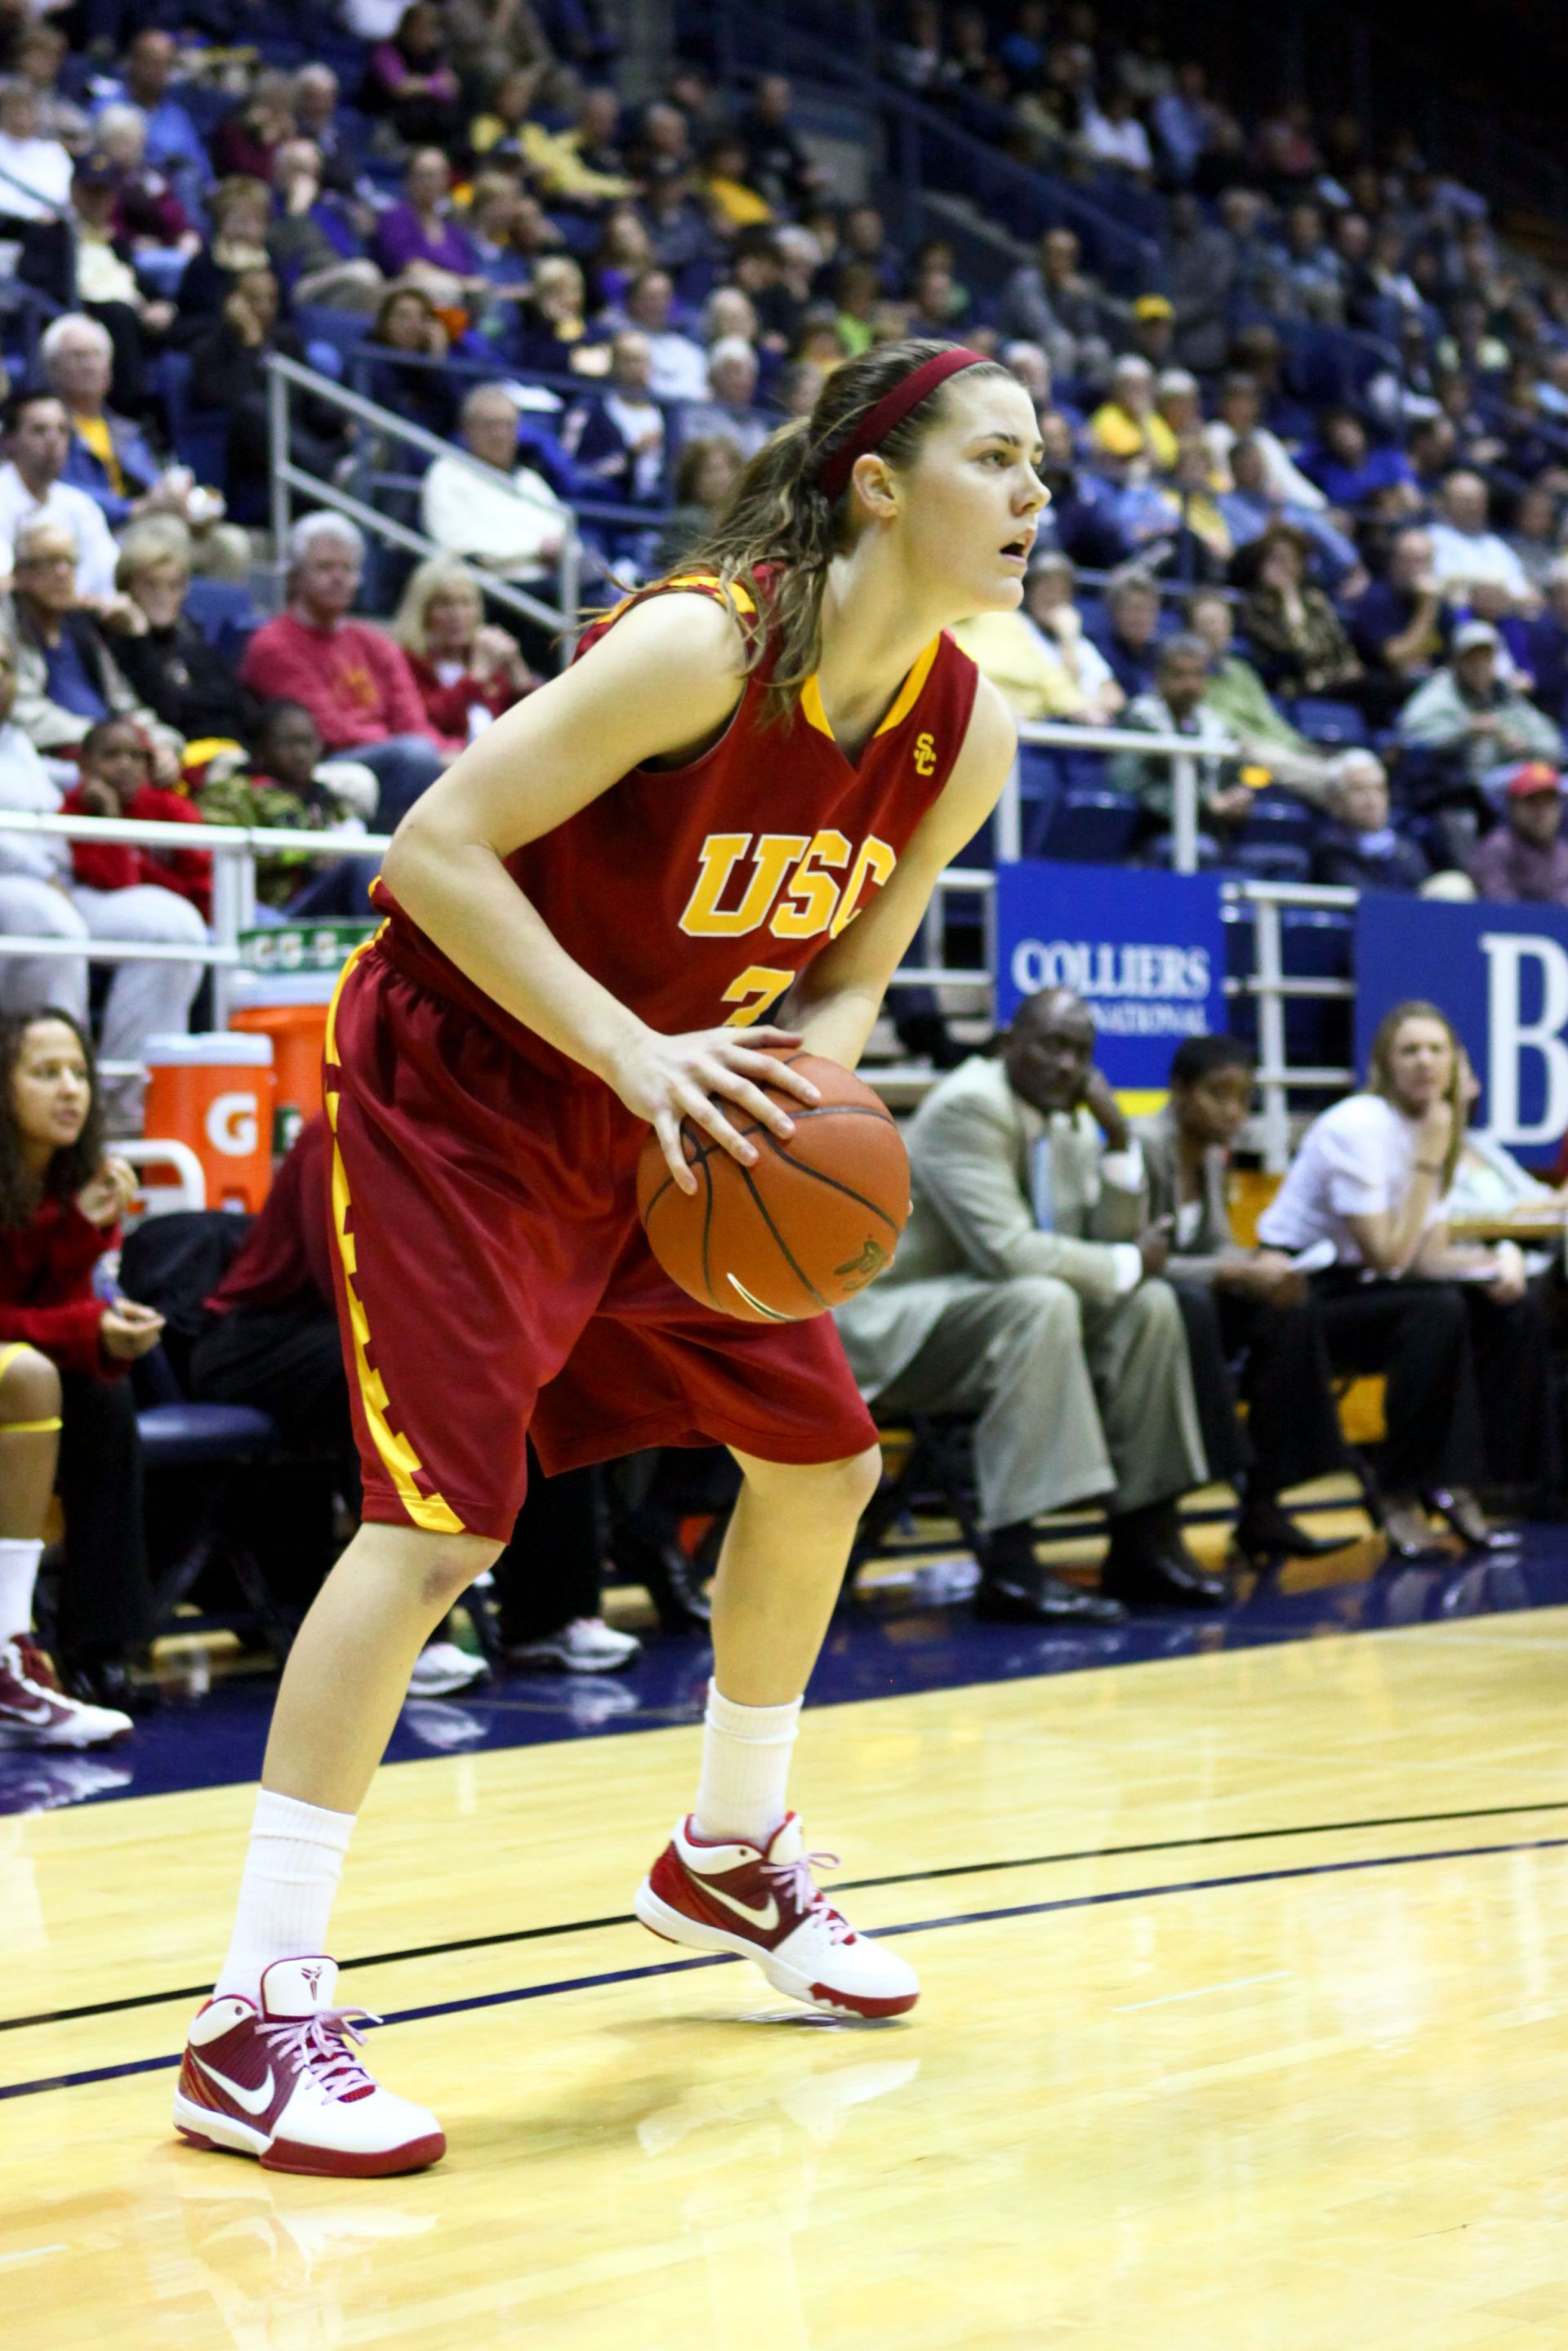 Hailey Dunham '06 - USC Basketball